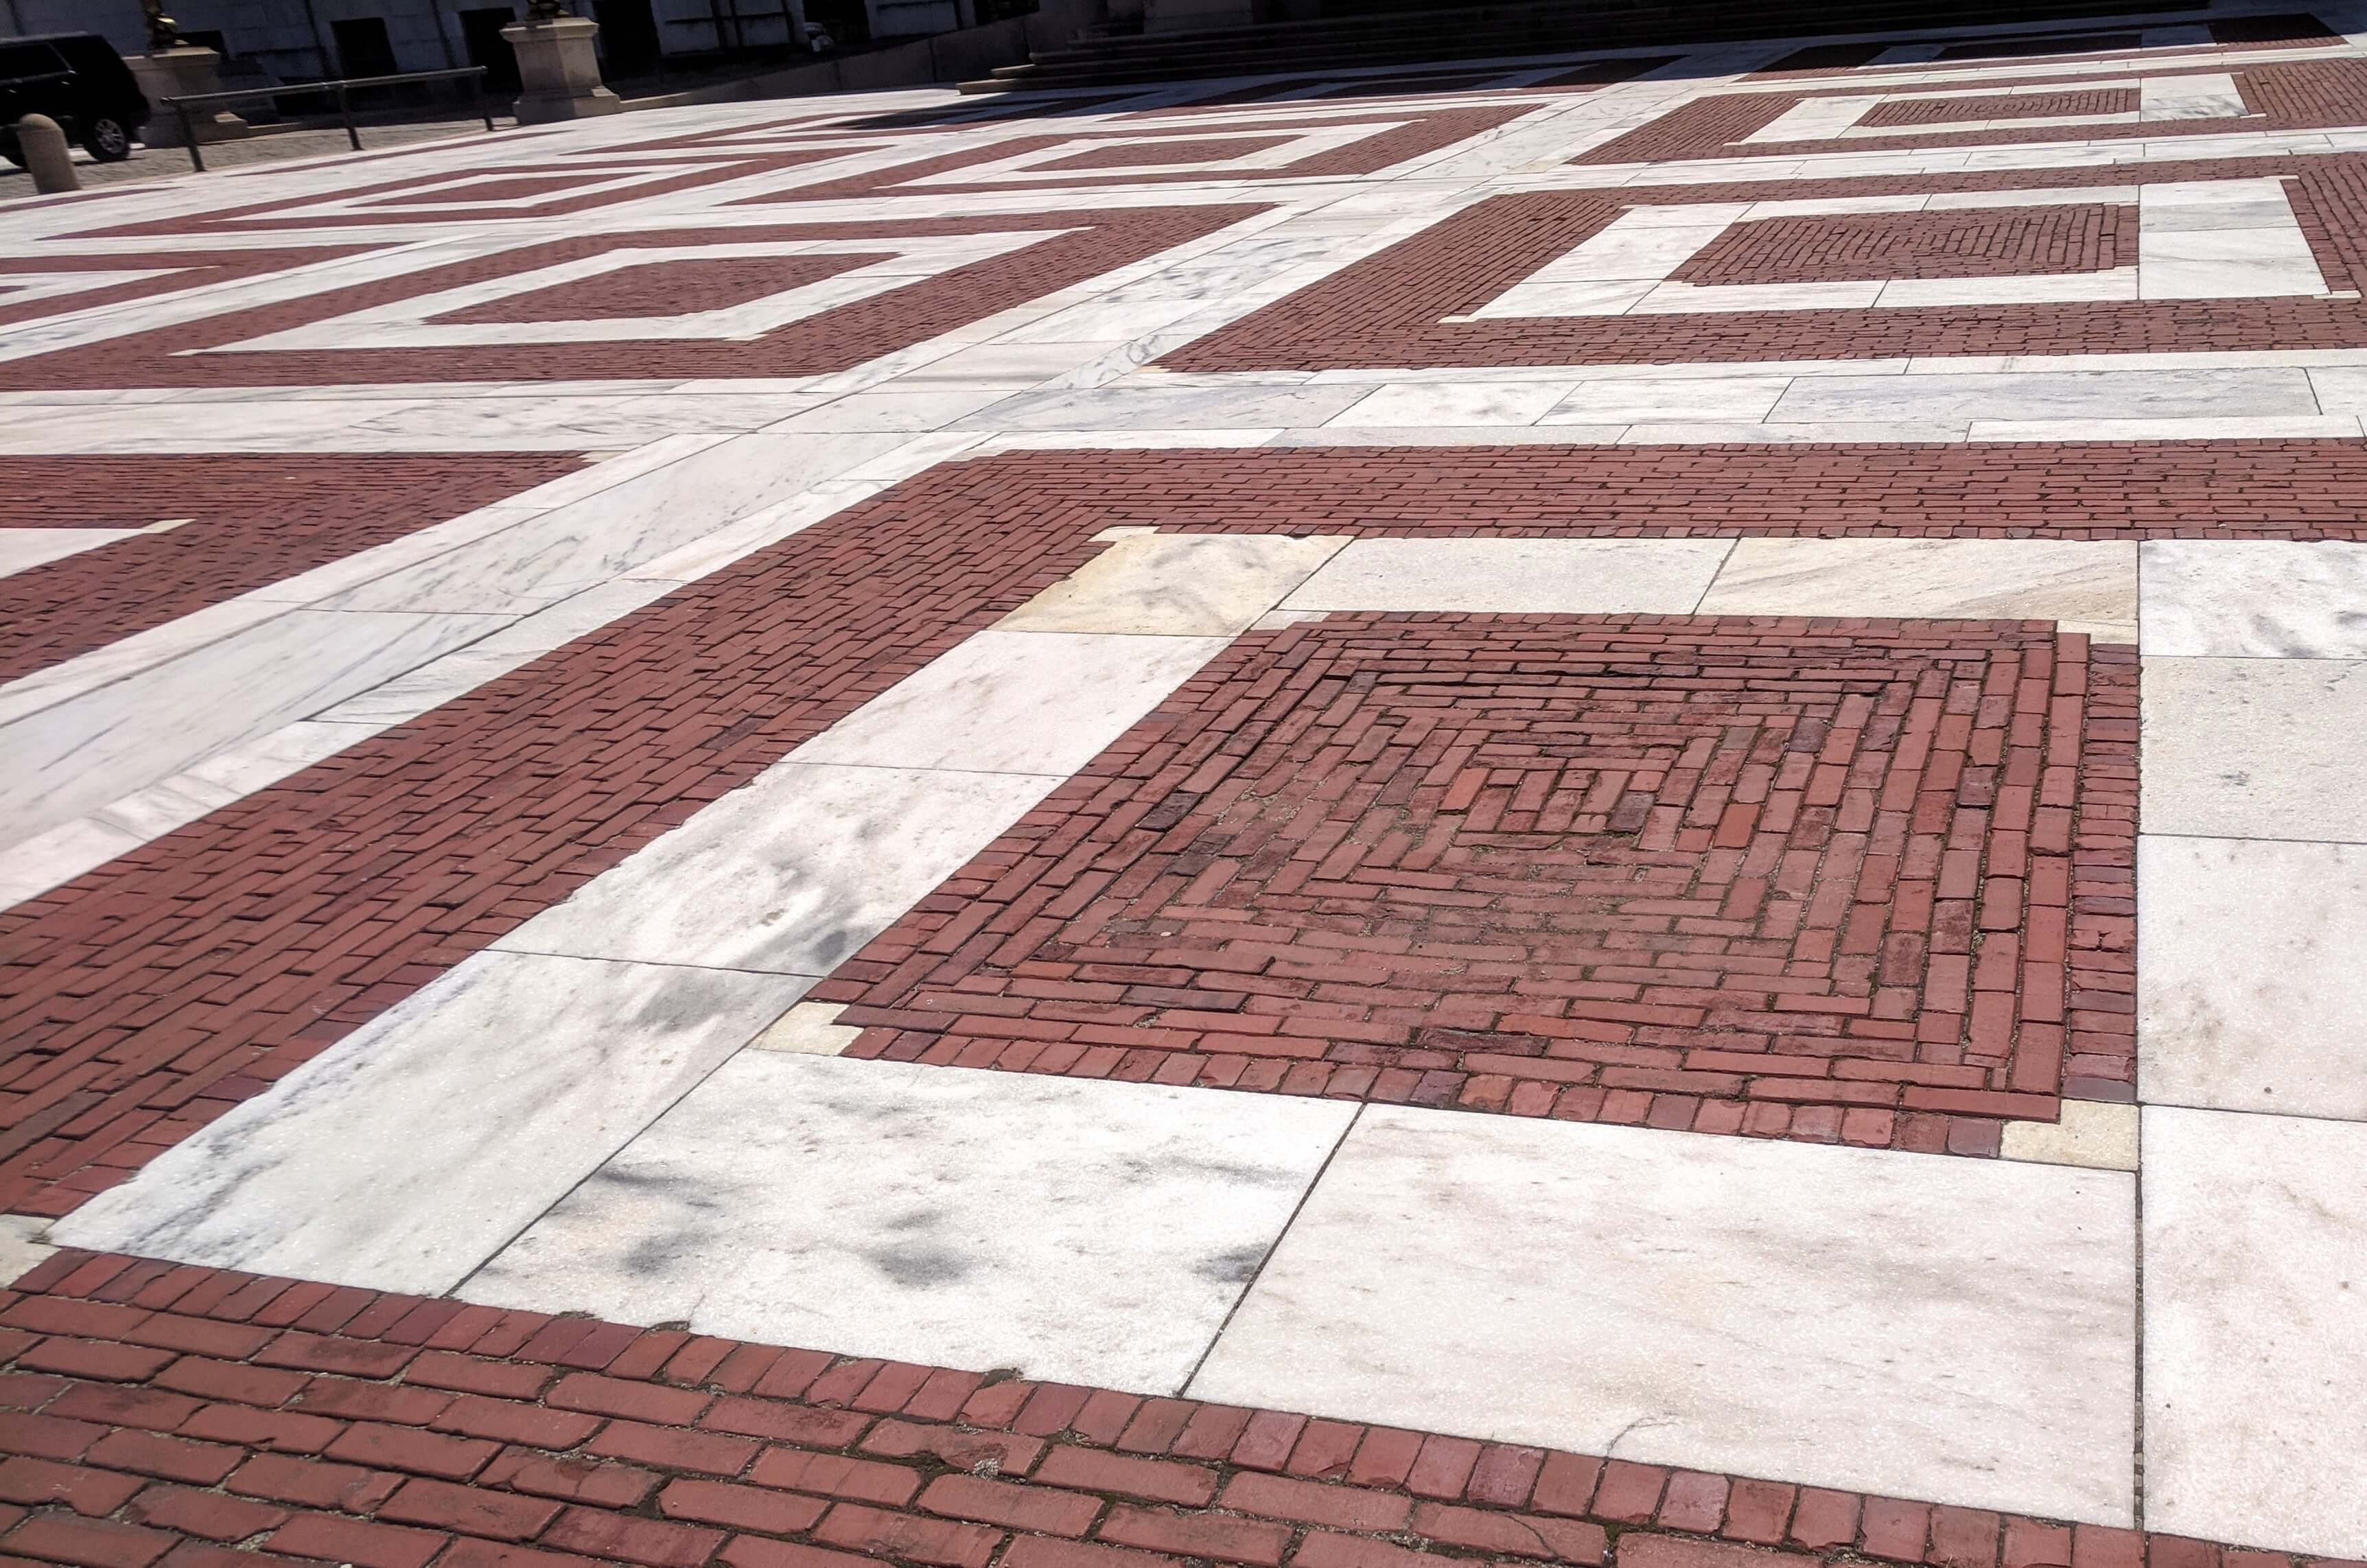 red brick and white marble designs on plaza